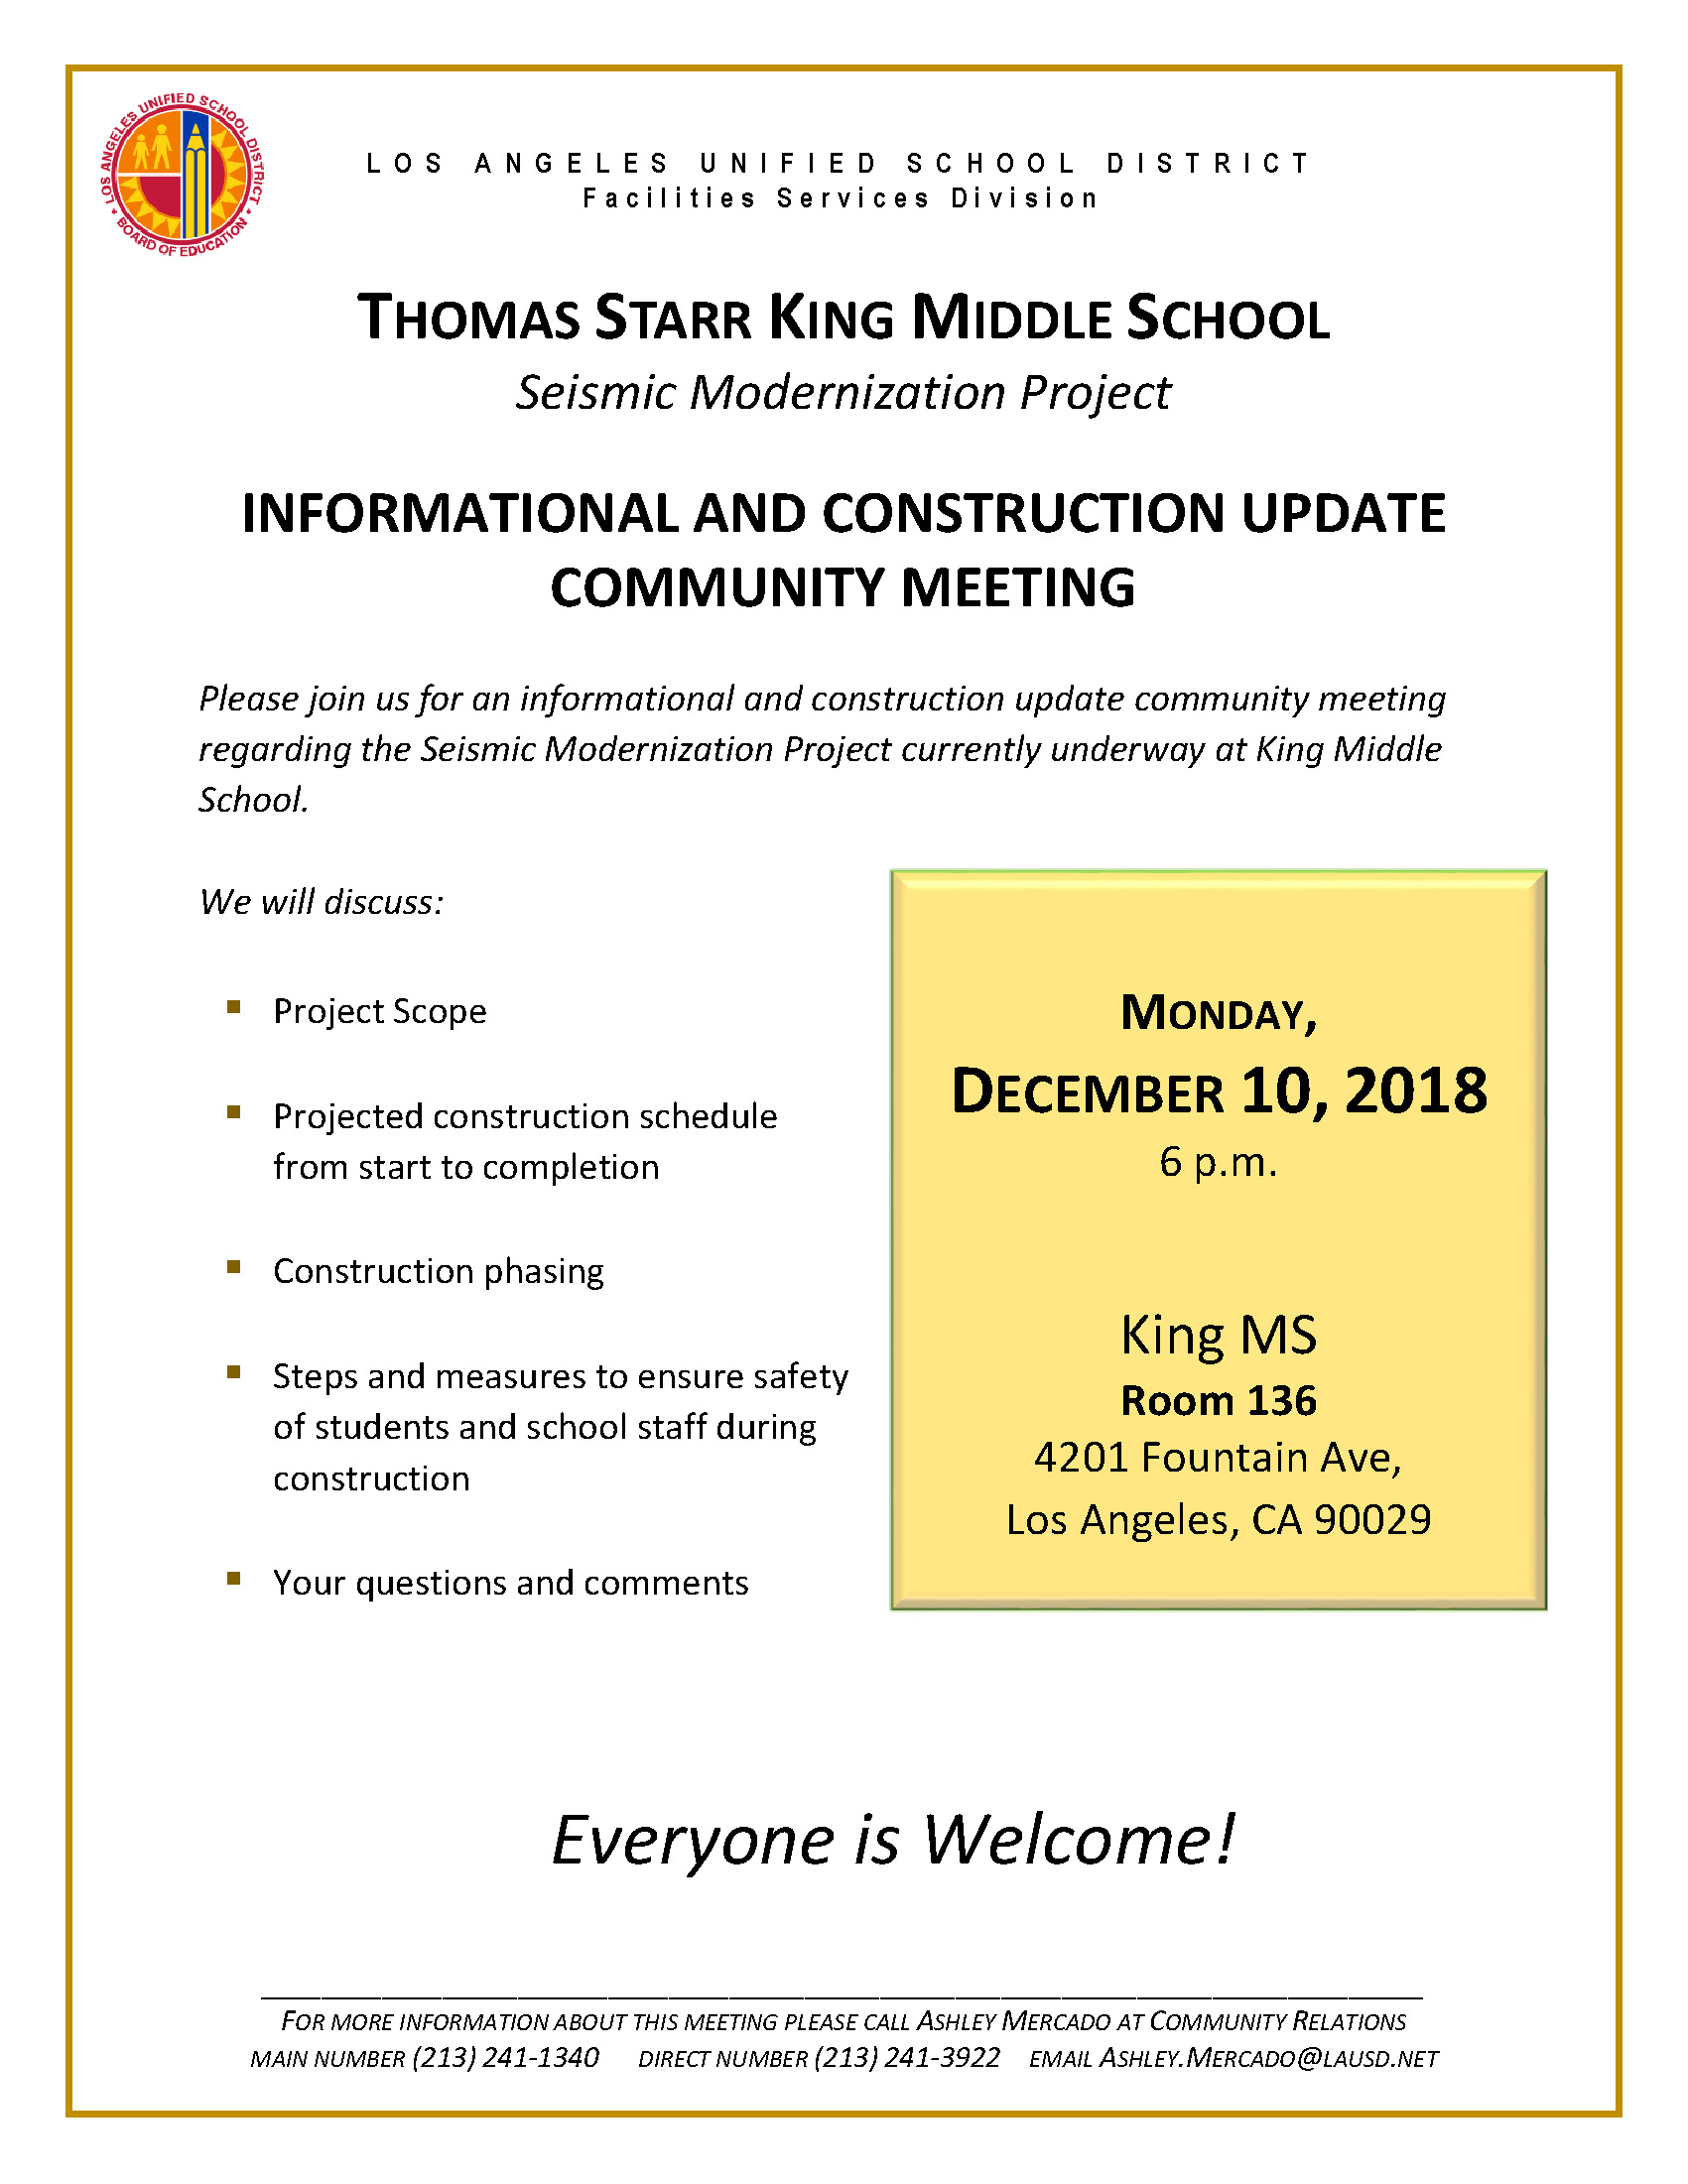 FLYER- King MS Community Meeting 12-10-18_Page_1.jpg